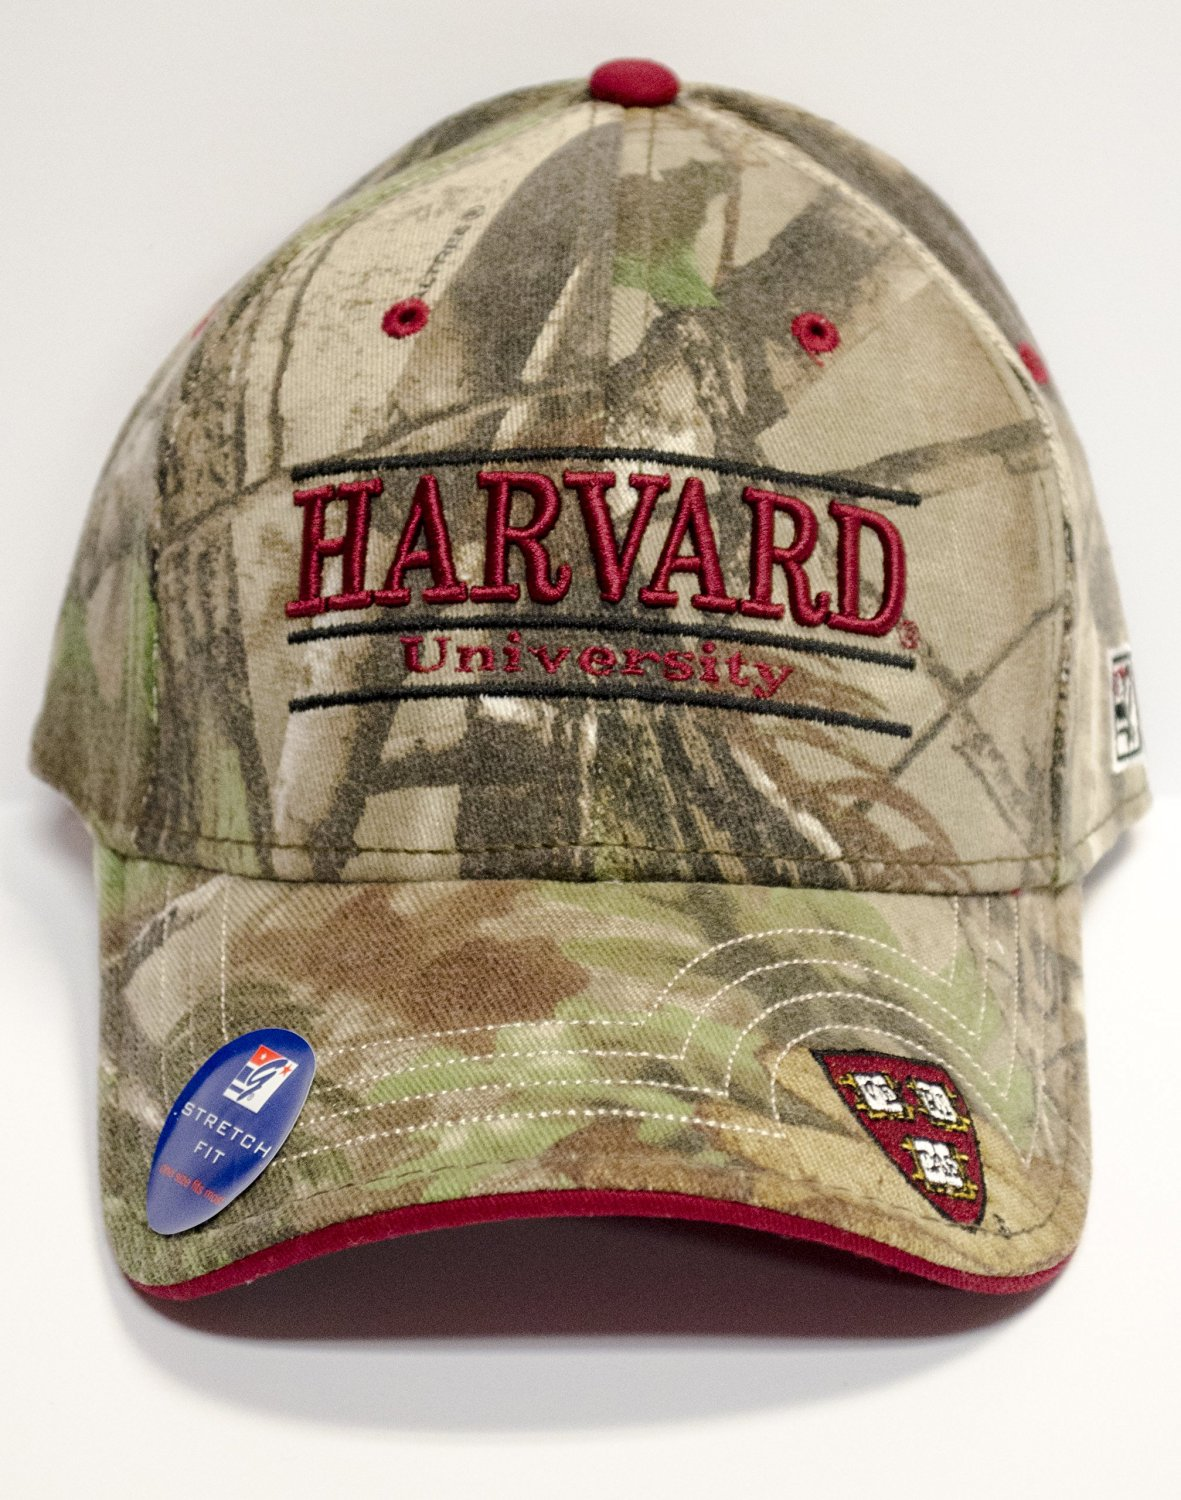 0fadc053bc097 Harvard University Officially Licensed Realtree And Crimson A-Flex  Embroidered Hat Cap